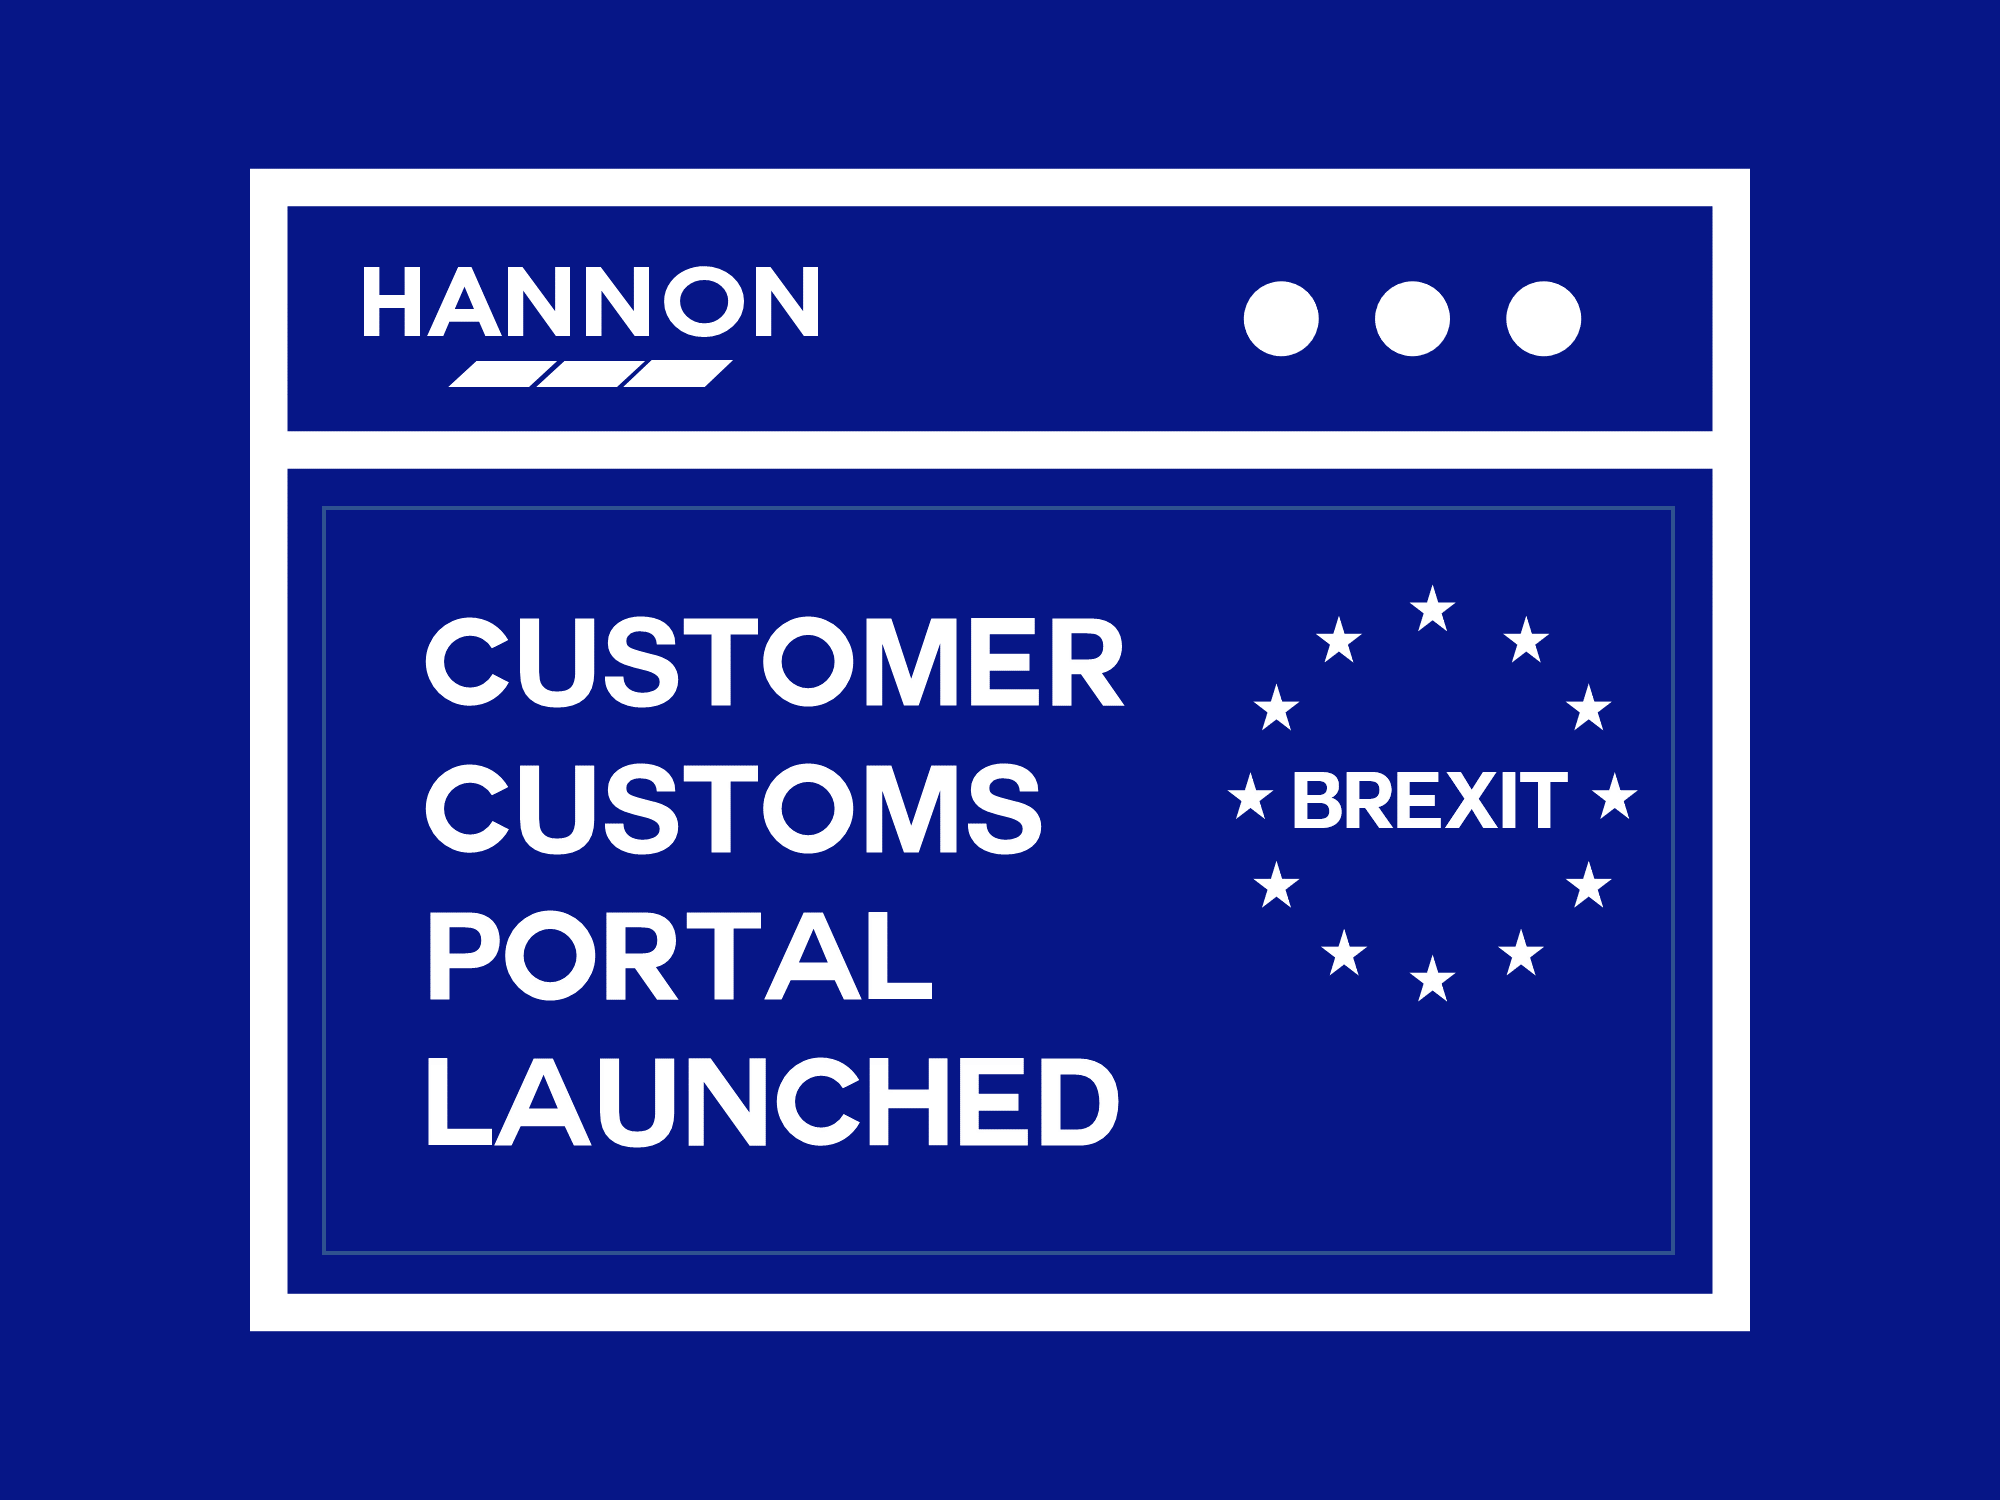 HANNON Customs Portal Launched